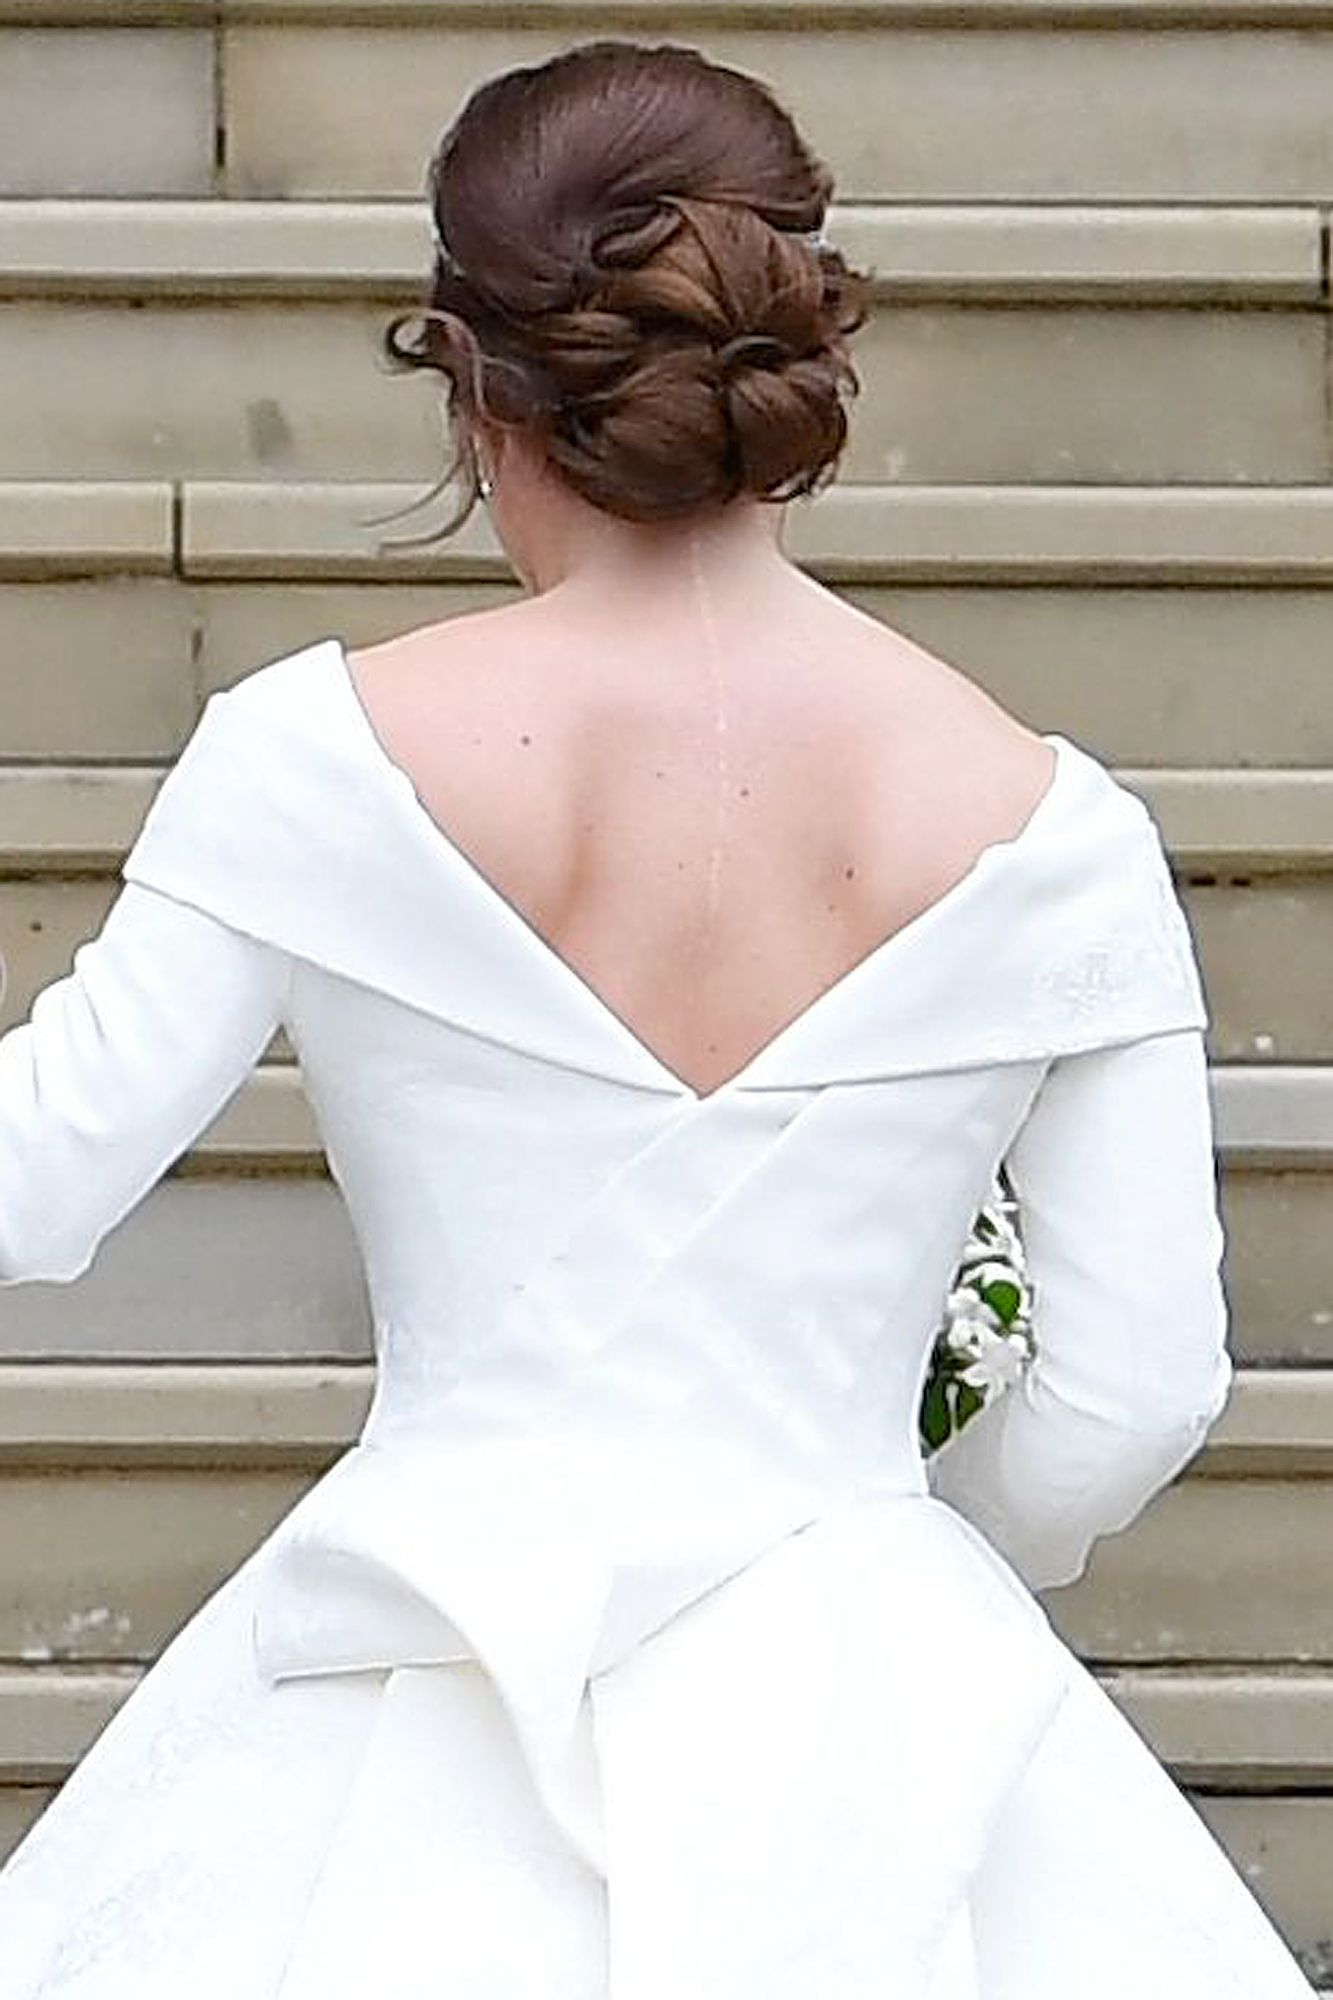 Fergie S Proudest Moment At Daughter S Wedding Was Seeing Eugenie Show Her Scoliosis Scar Royal Blue Dresses Eugenie Wedding Princess Eugenie [ 2000 x 1333 Pixel ]